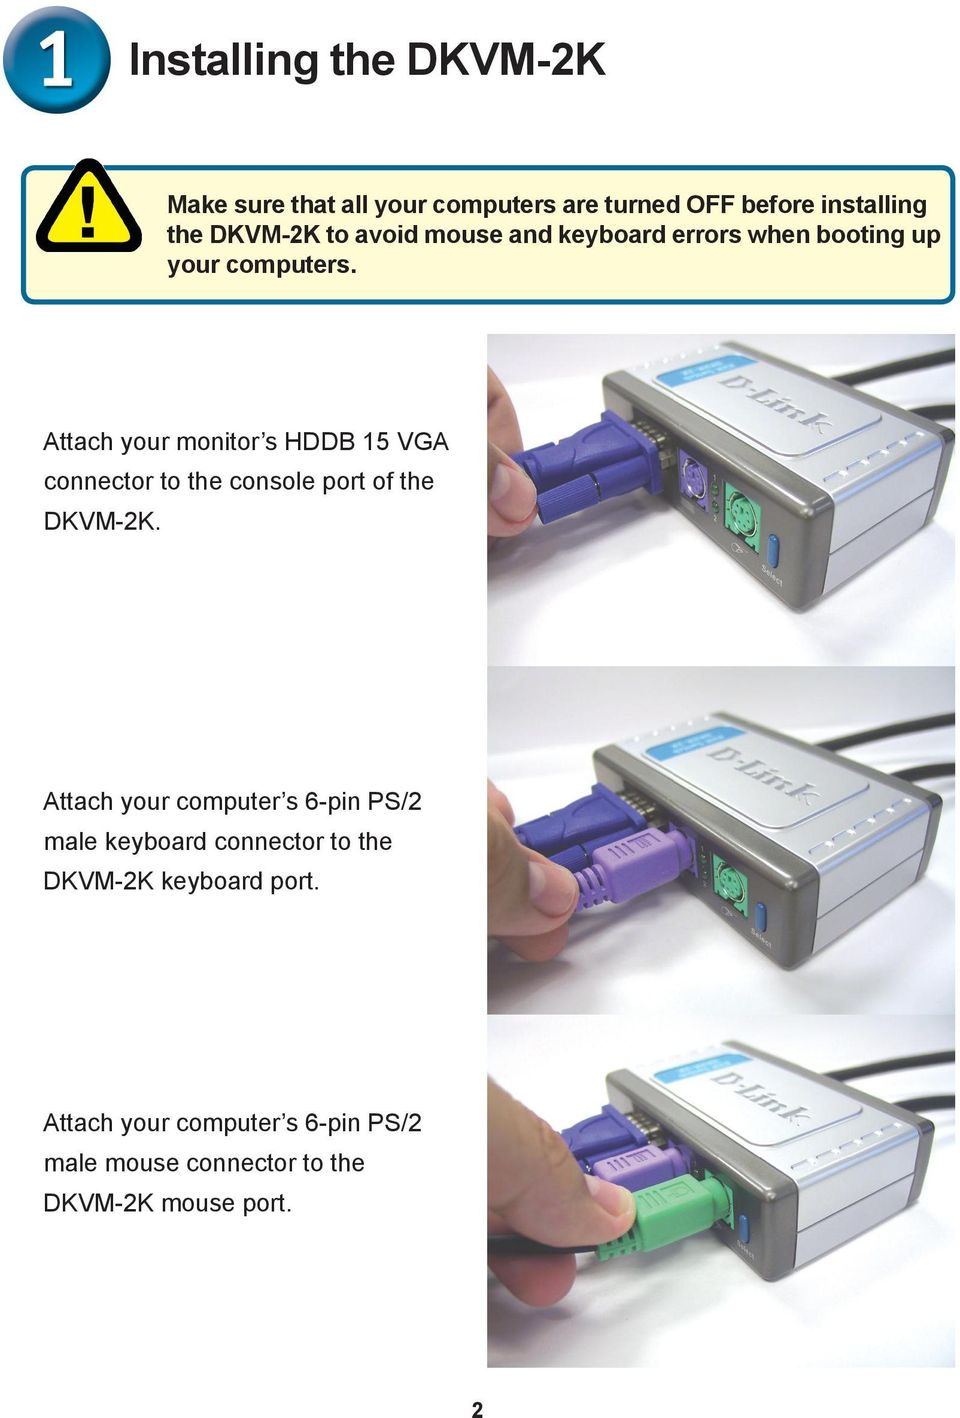 Attach your monitor s HDDB 15 VGA connector to the console port of the DKVM-2K.